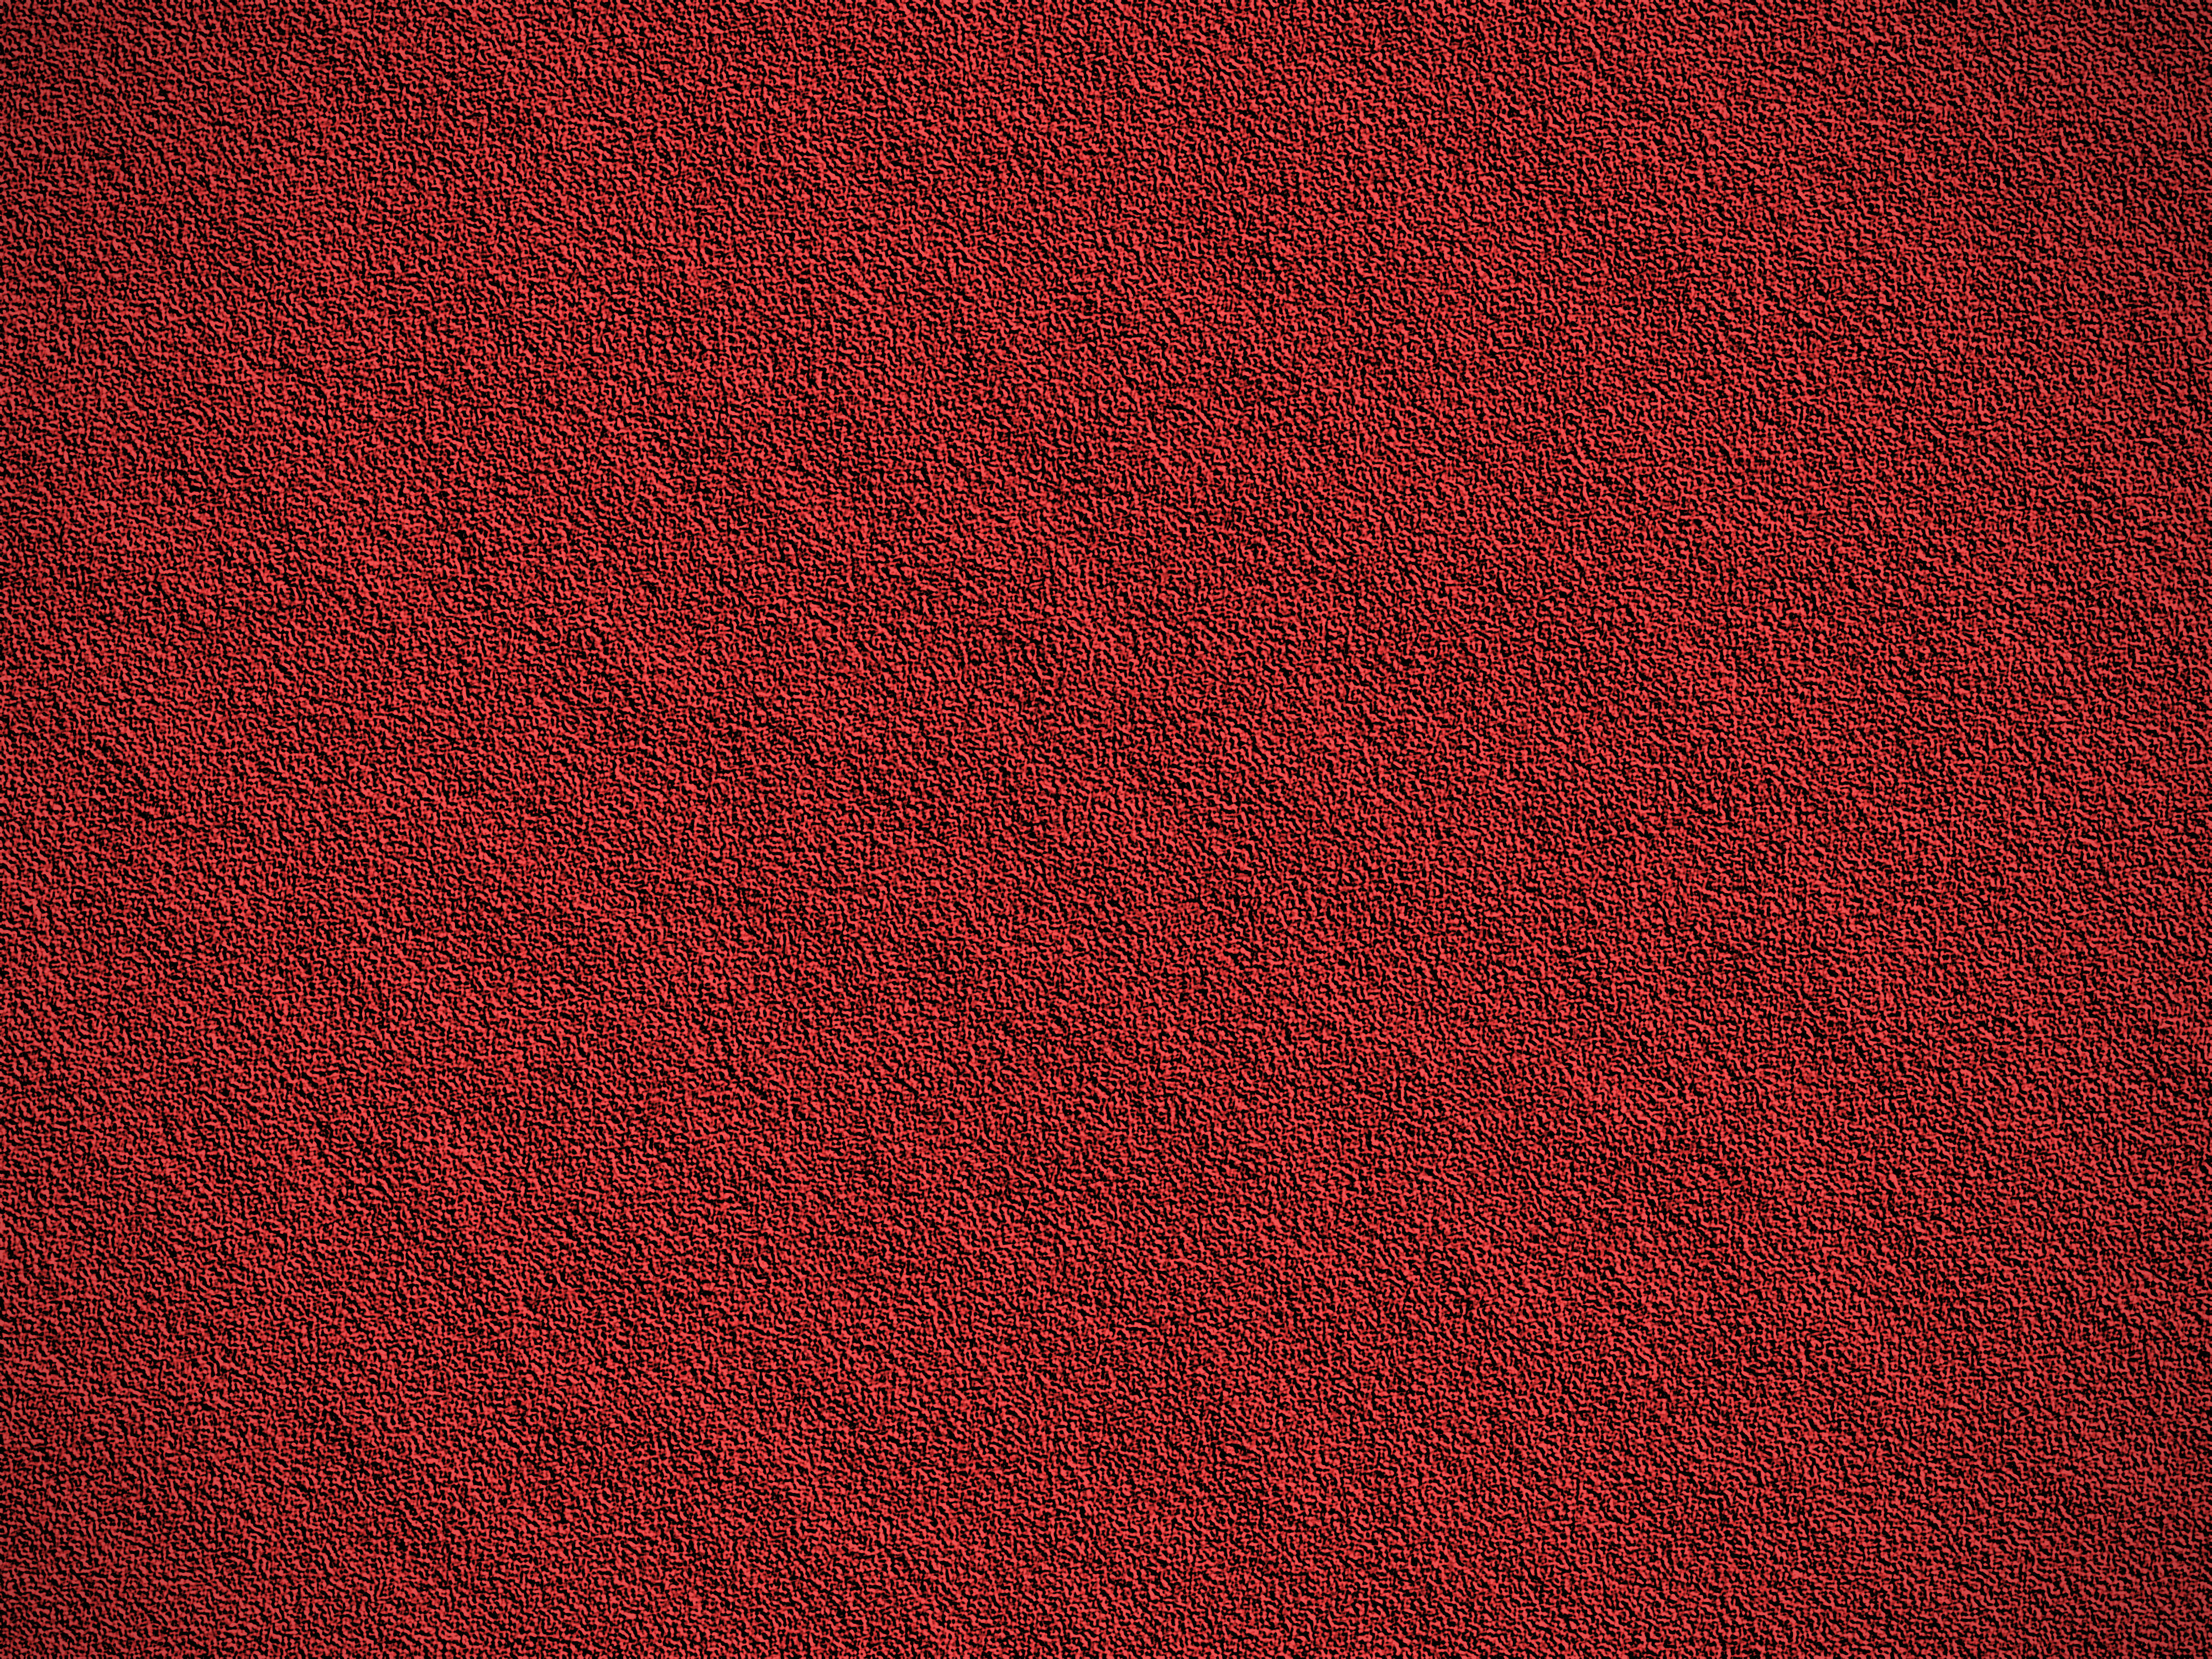 Big Red Rough Grunge Texture Download